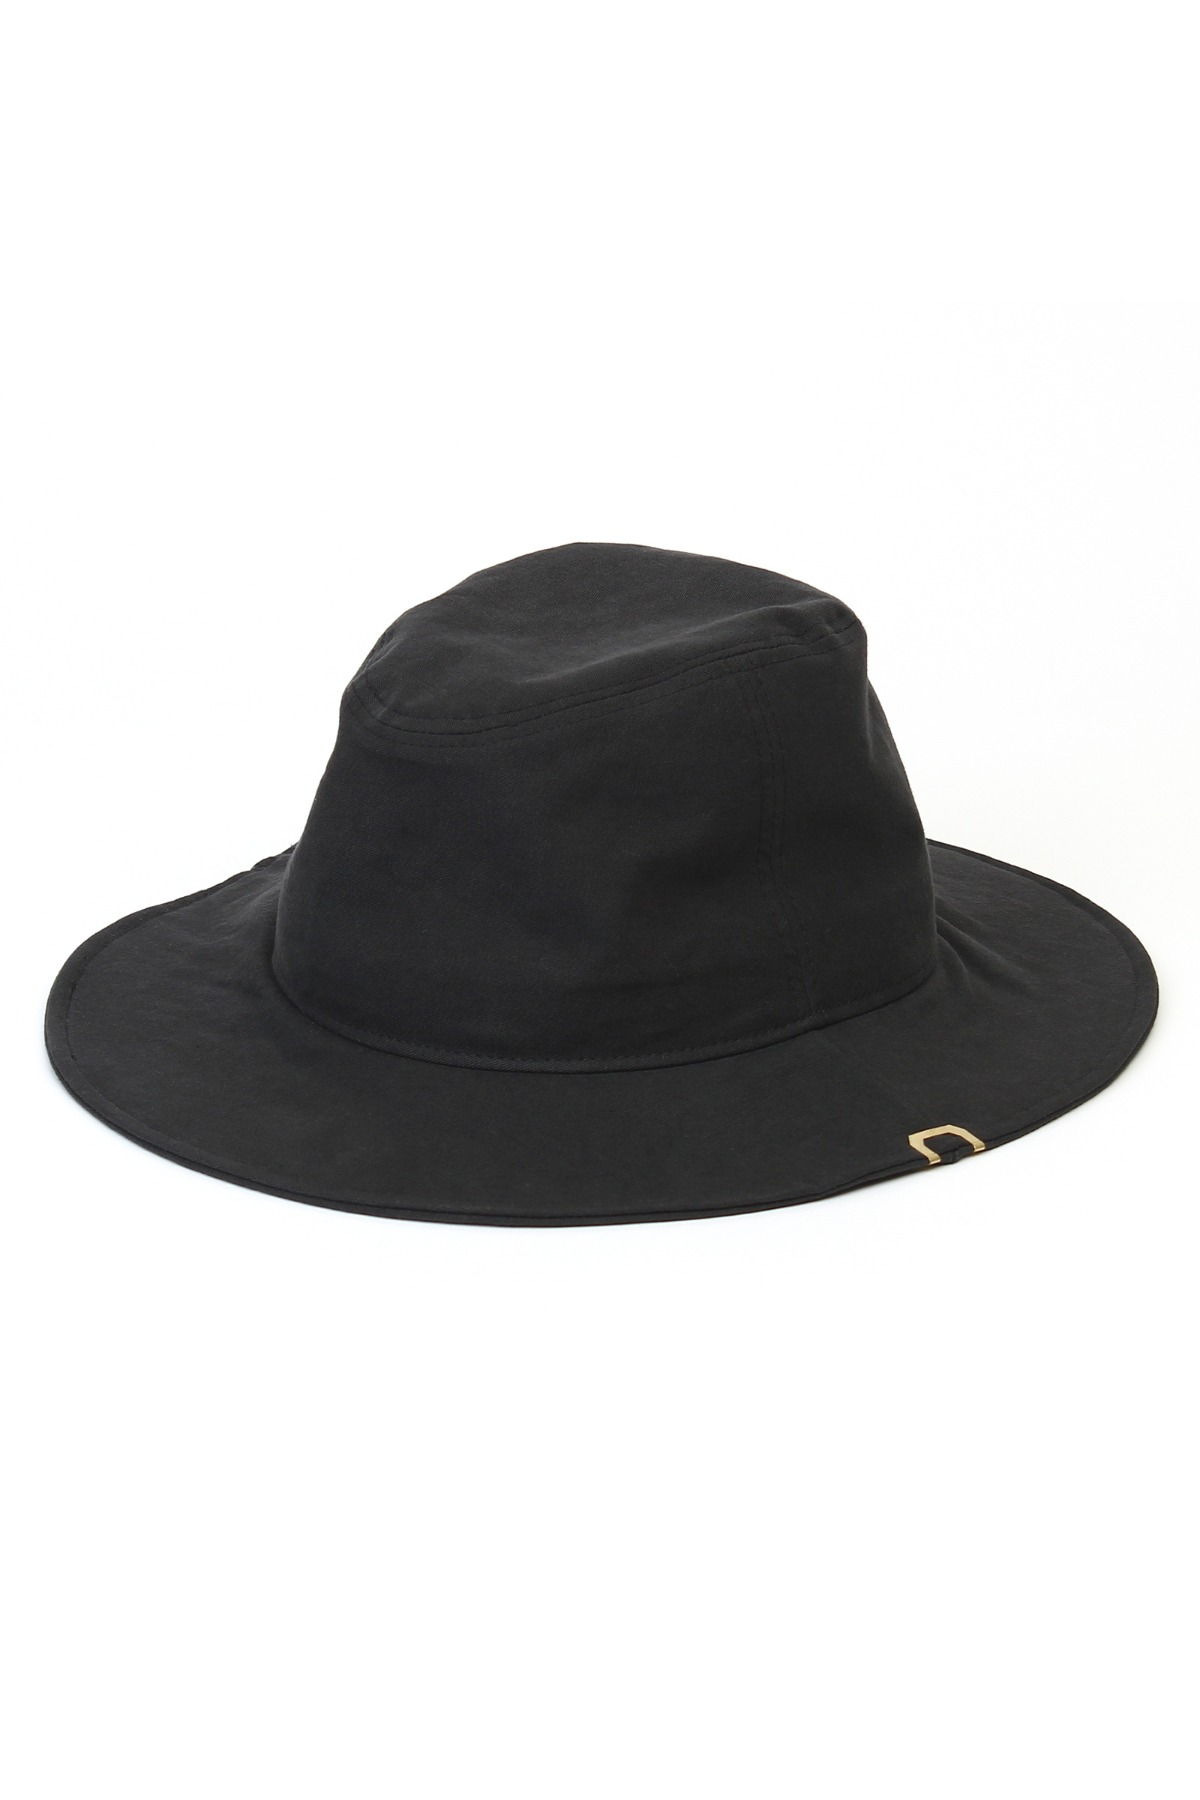 [2차 재입고] HIGH RISE HAT / BIO / BLACK